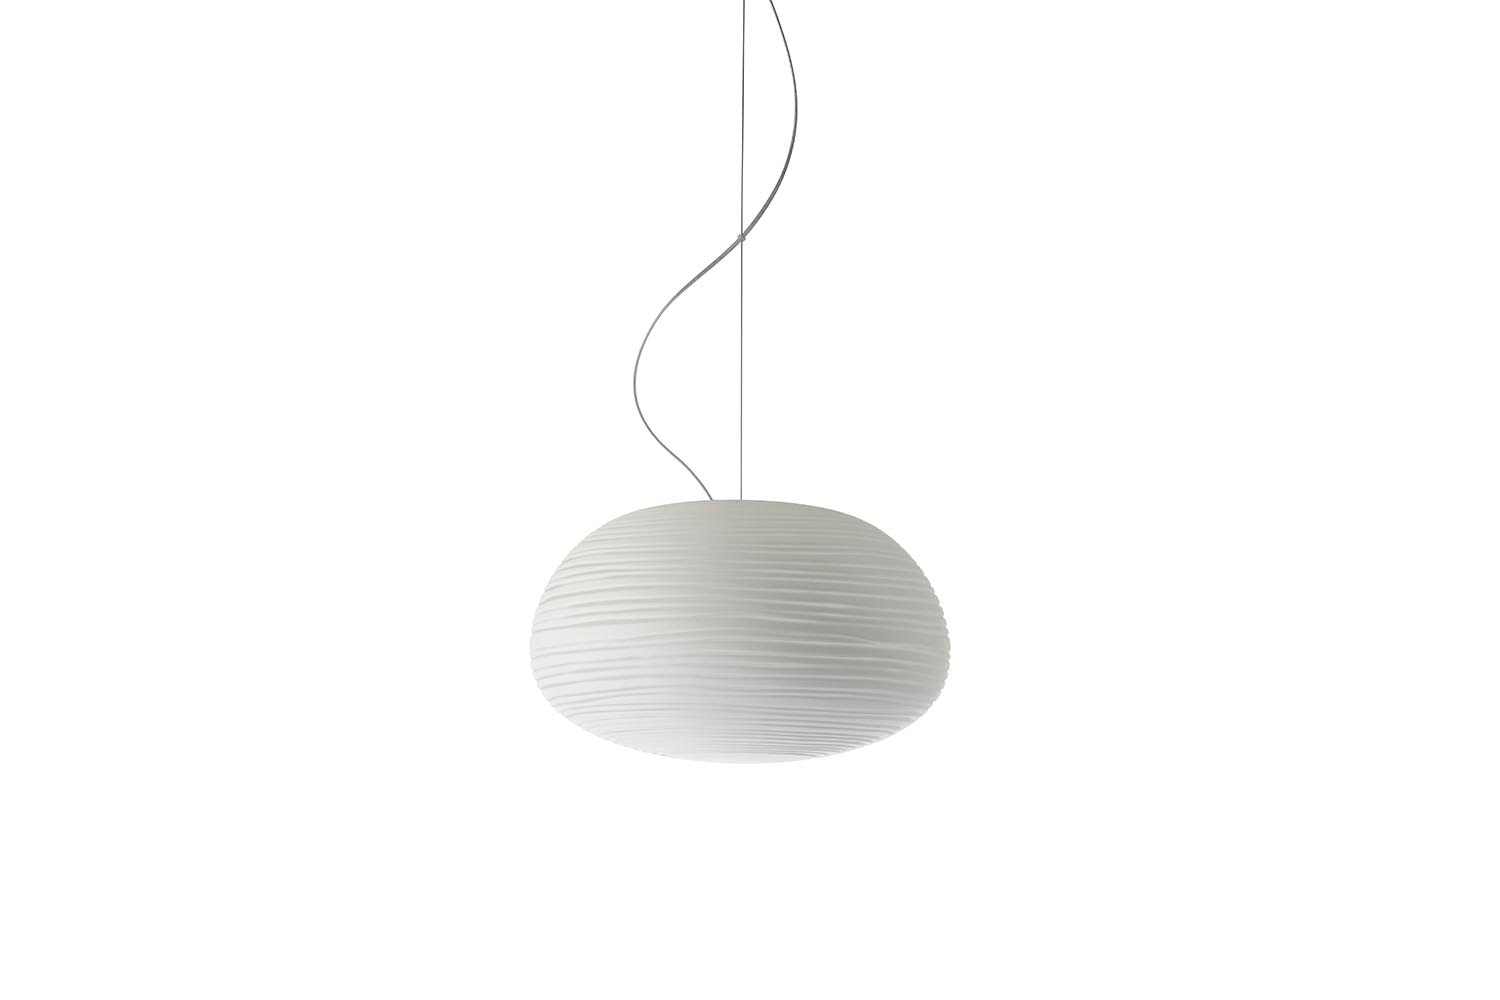 Rituals 2 Suspension Lamp by Ludovica & Roberto Palomba for Foscarini